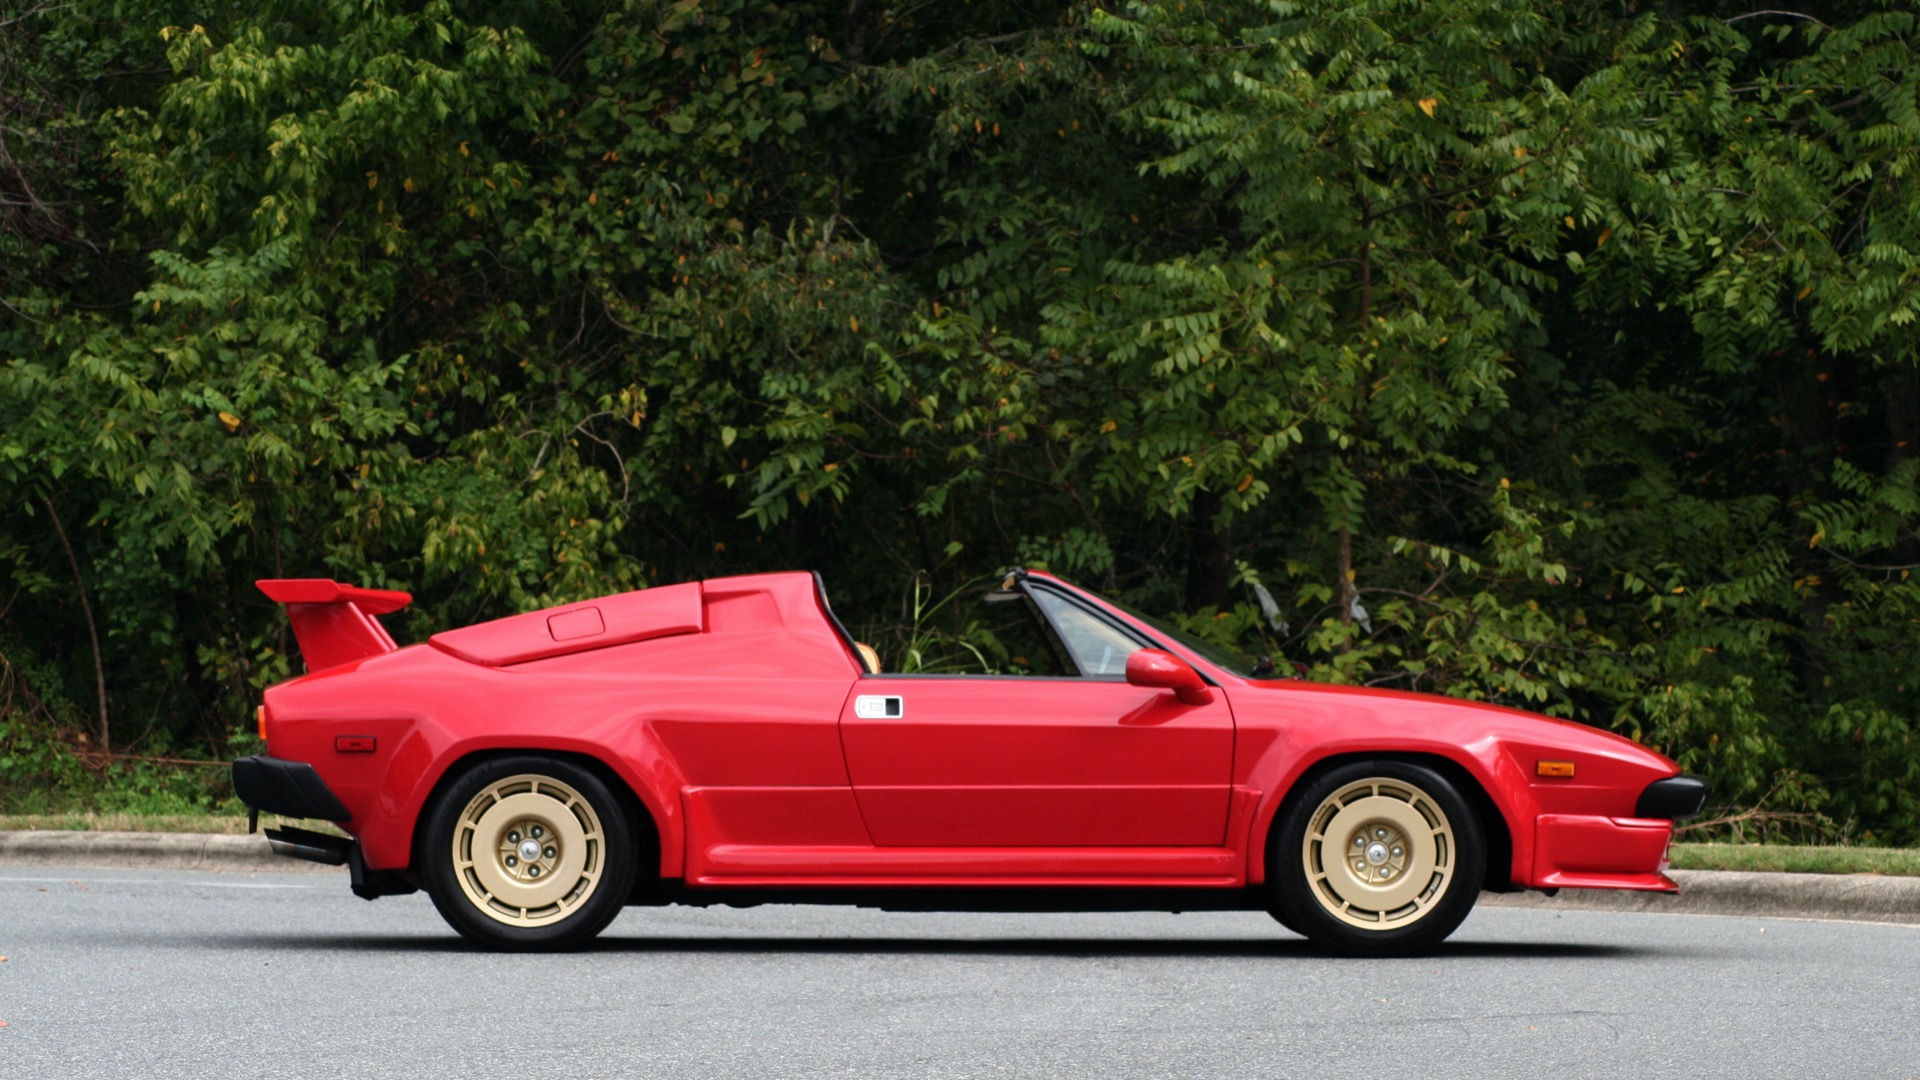 Used 1988 Lamborghini JALPA 3.5 / 5-SPD MANUAL / LOW MILES / EXCELLENT CONDITION for sale Sold at Formula Imports in Charlotte NC 28227 12